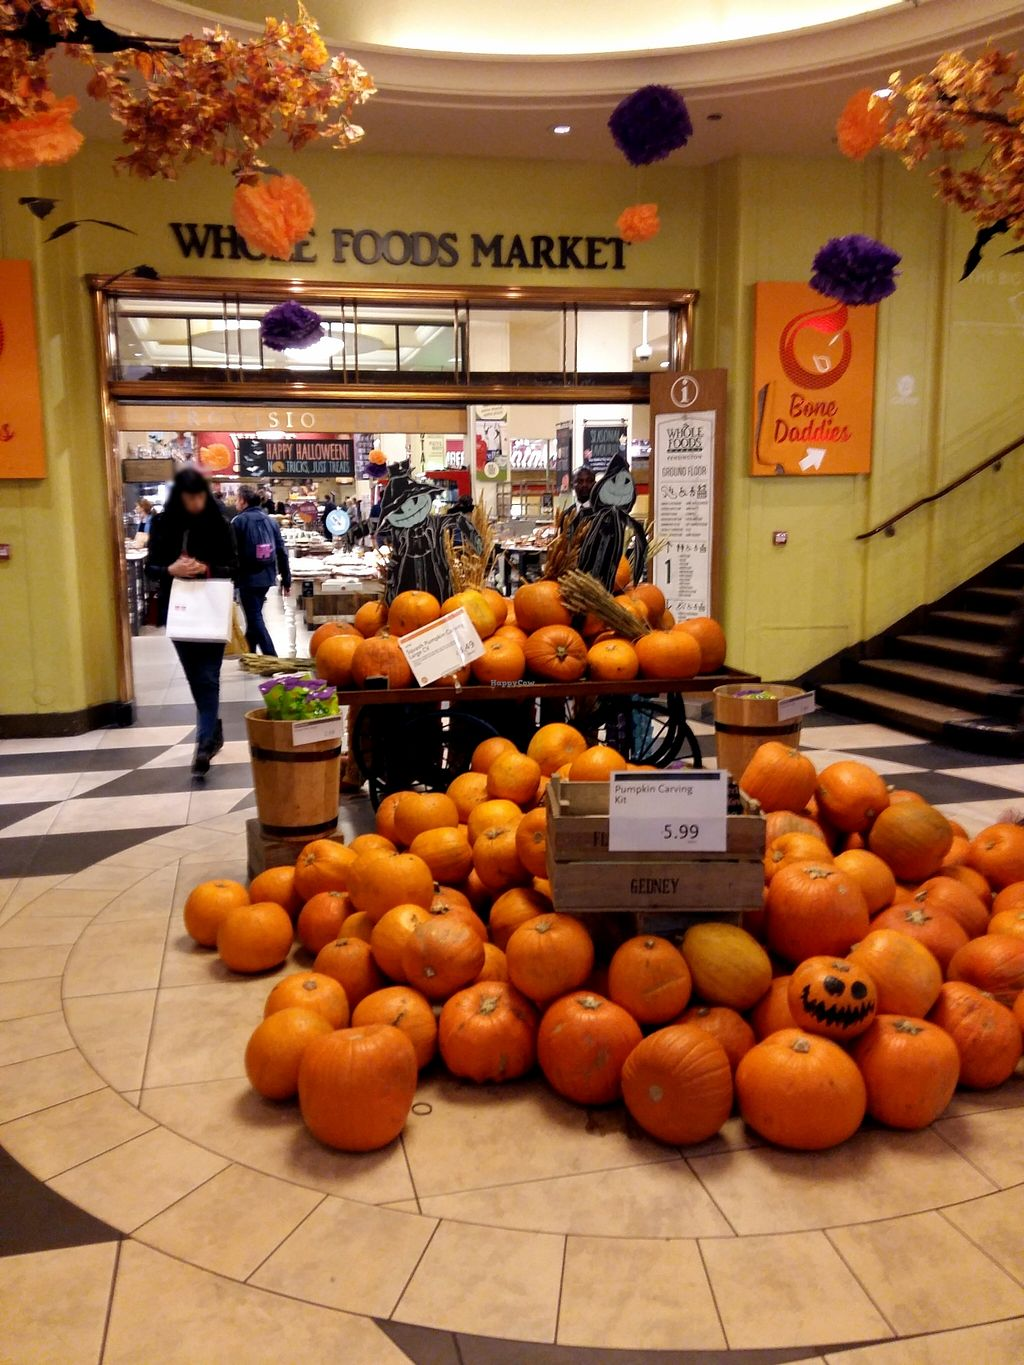 """Photo of Whole Foods Market - Kensington High St  by <a href=""""/members/profile/Gudrun"""">Gudrun</a> <br/>Whole Foods Market <br/> January 31, 2016  - <a href='/contact/abuse/image/14443/134400'>Report</a>"""